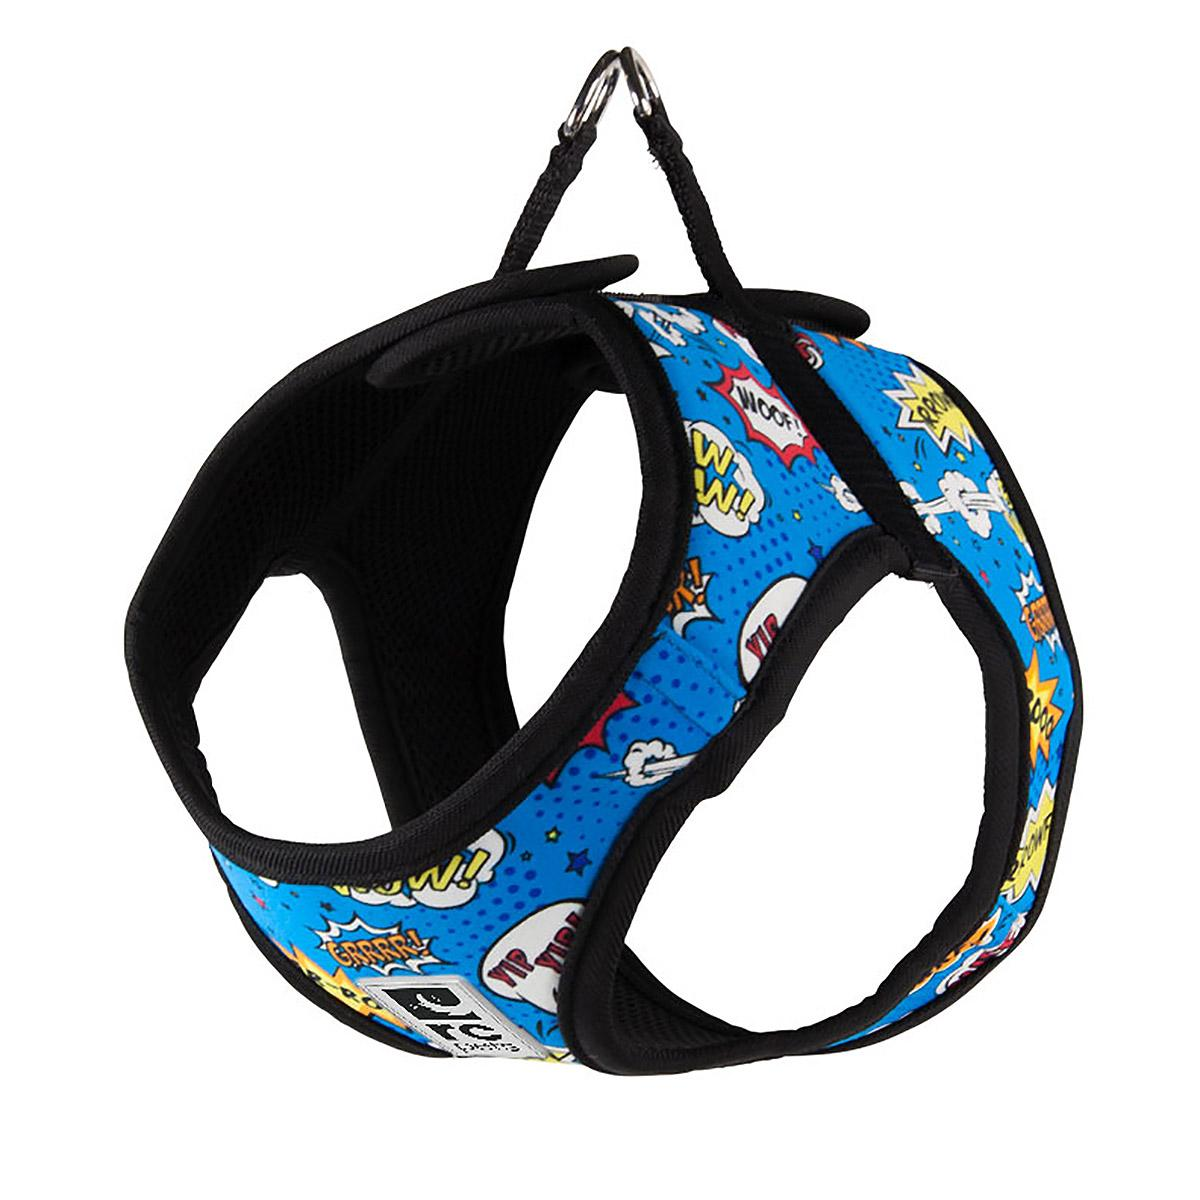 Step-in Cirque Dog Harness - Comic Sounds